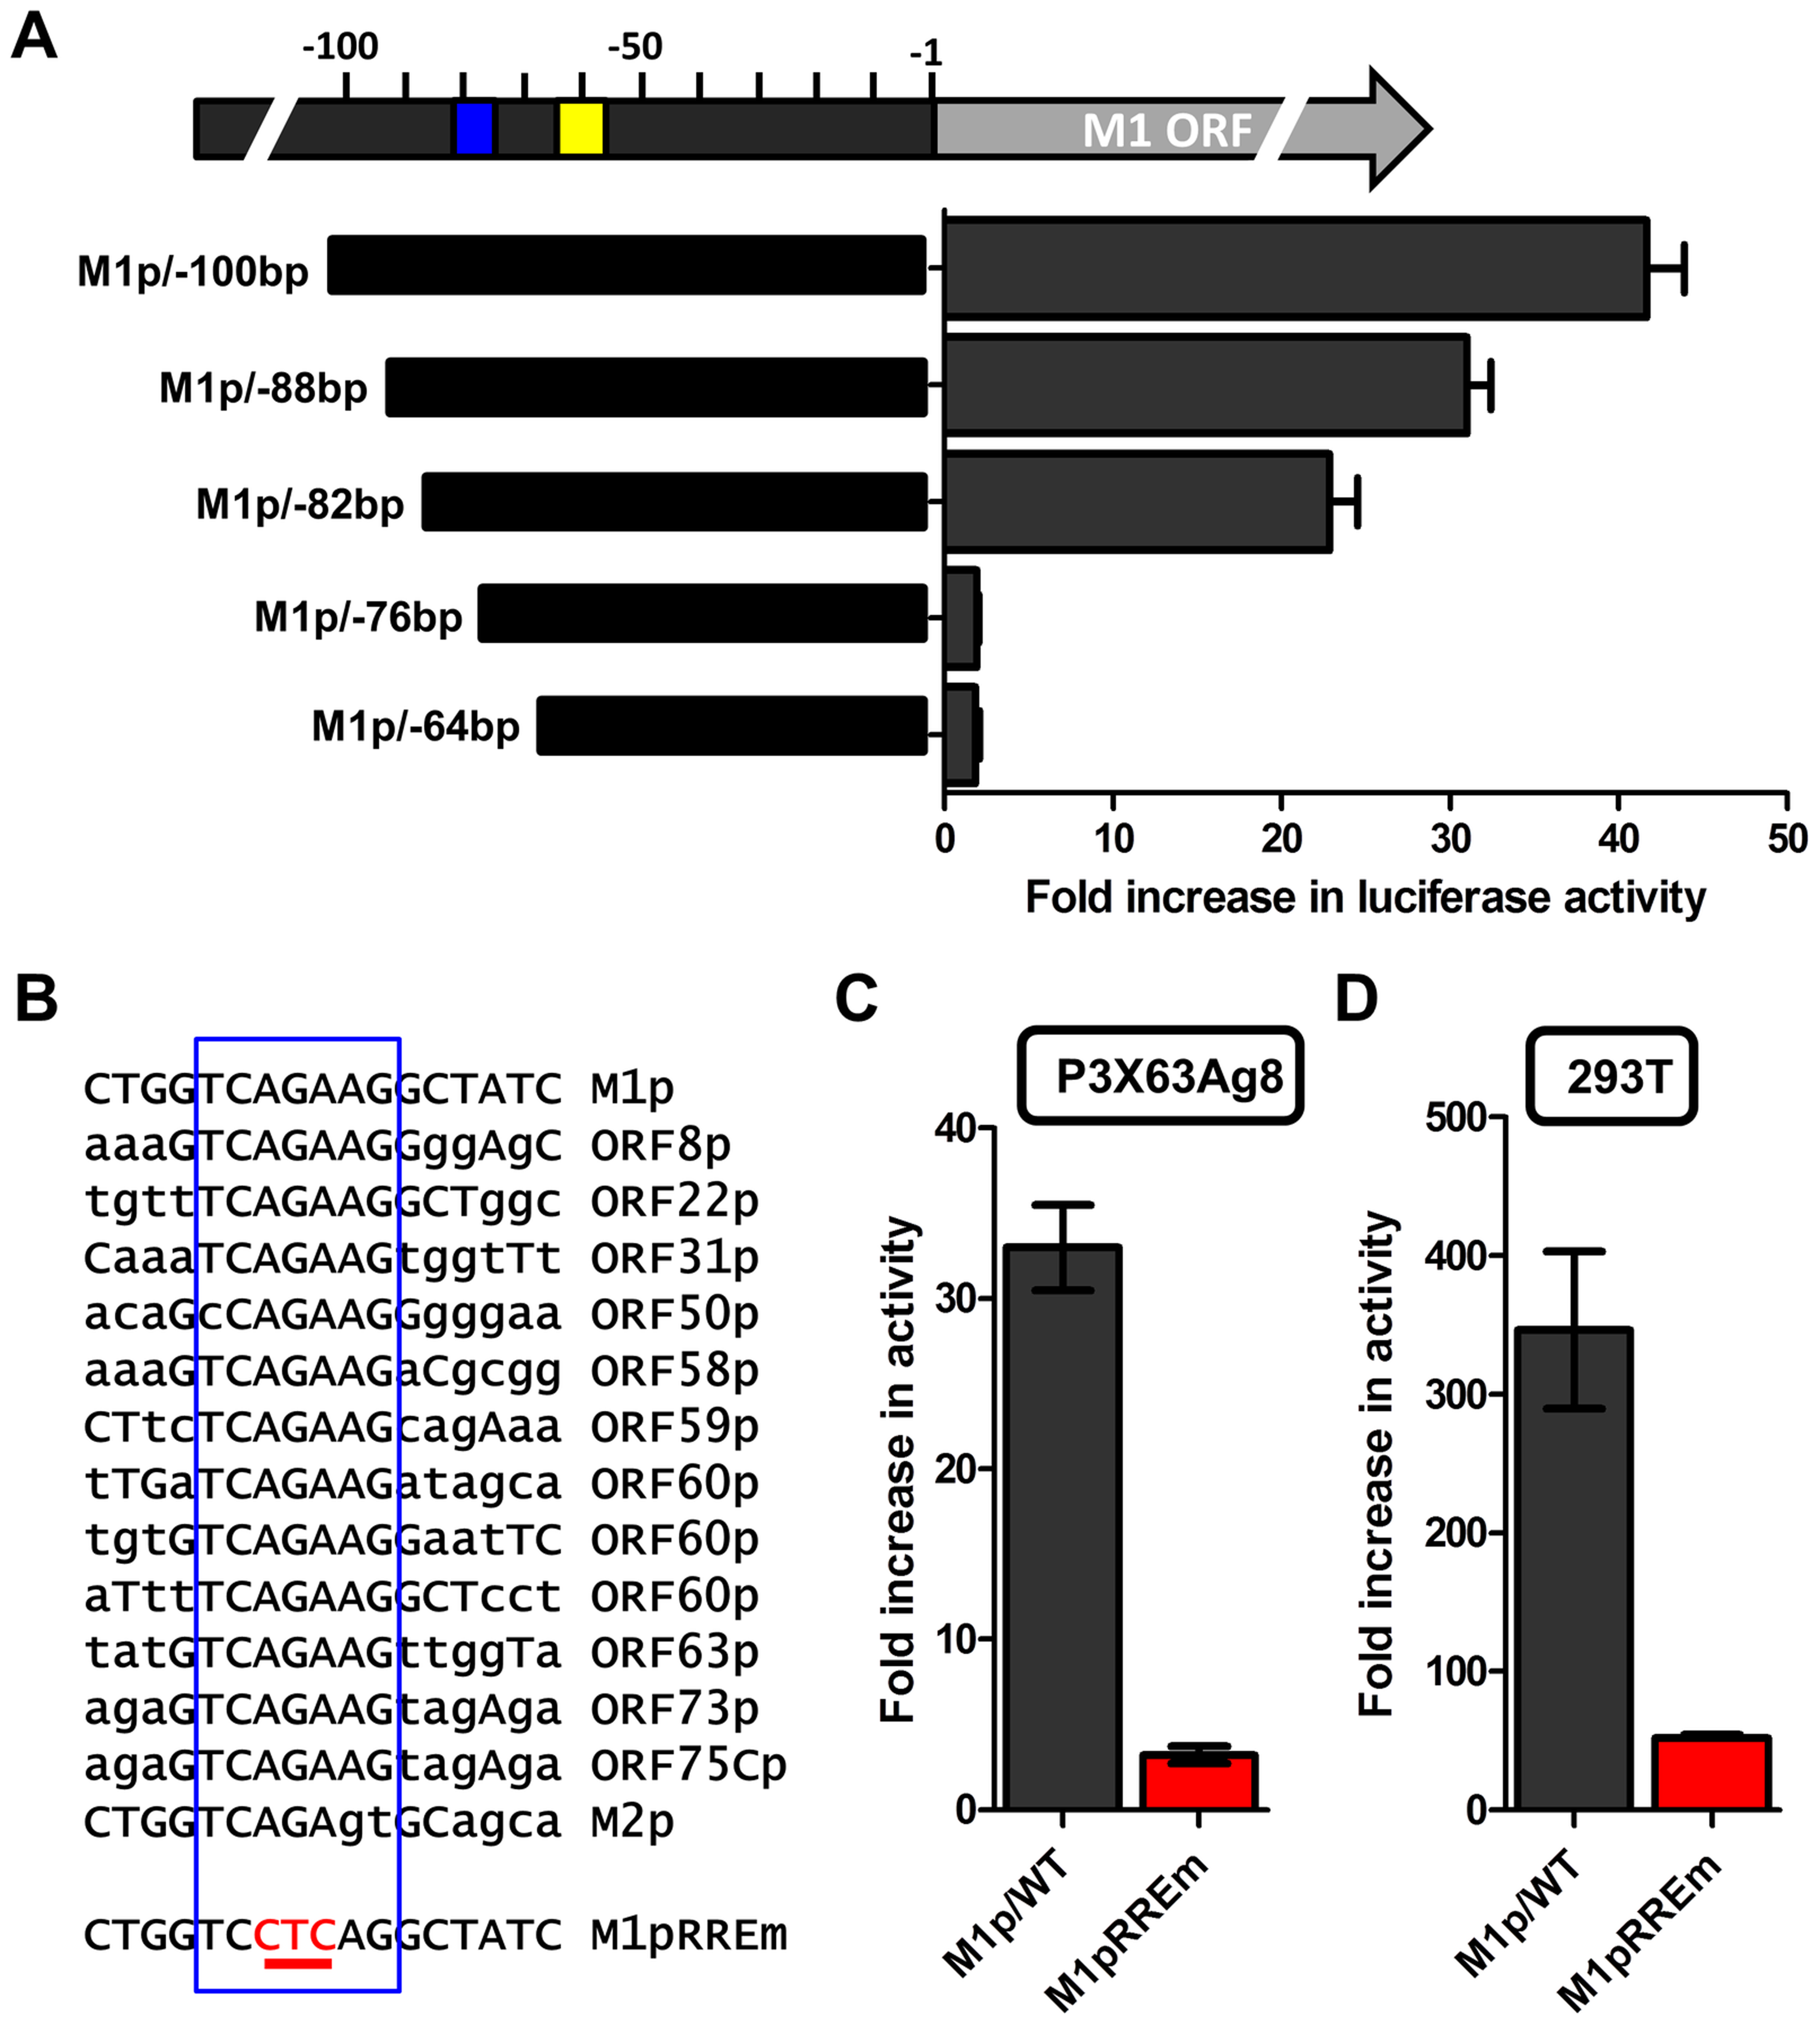 Identification of a novel RTA response element in the M1 promoter.